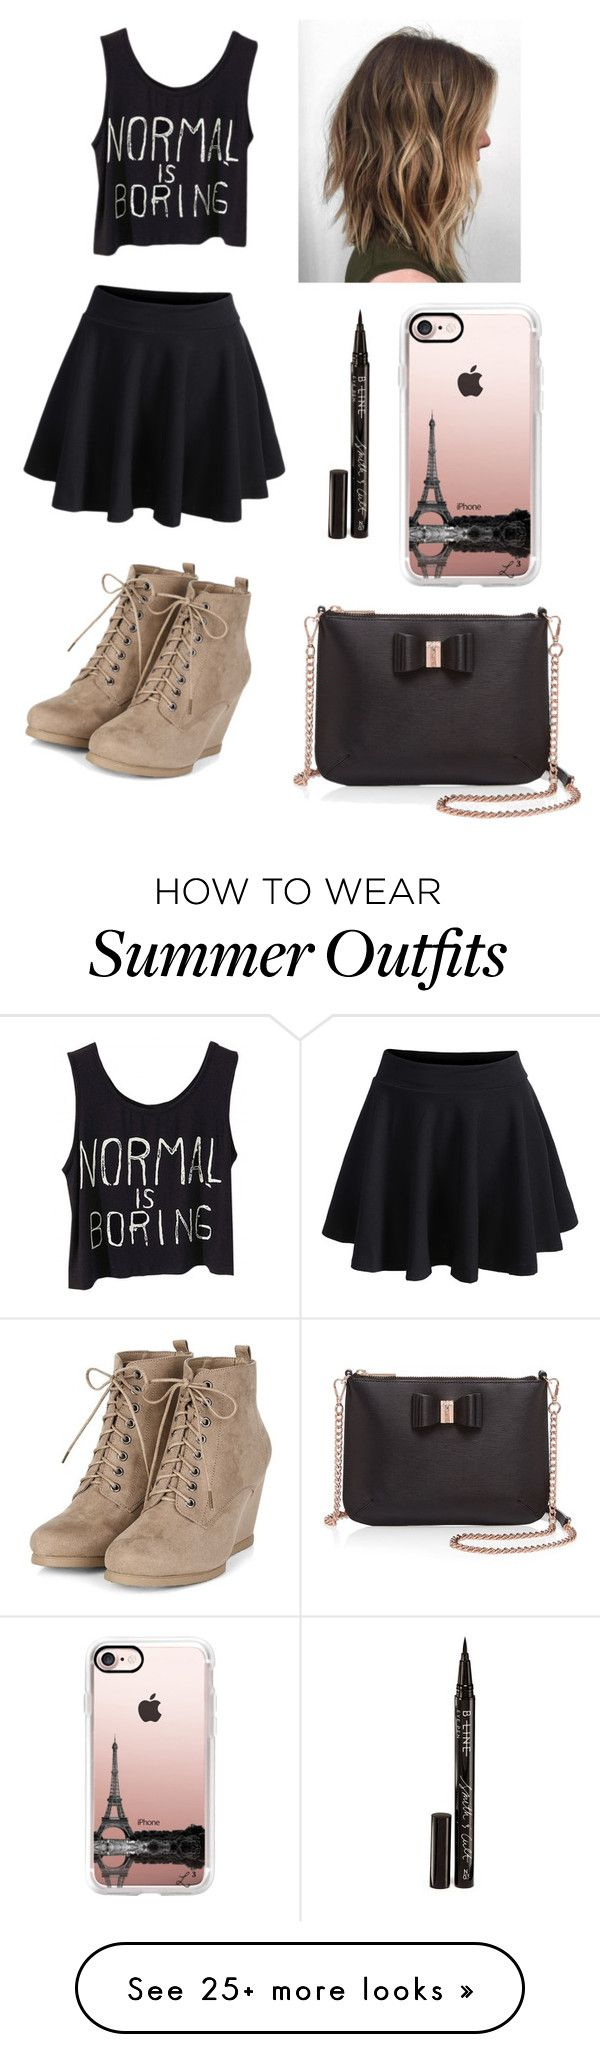 """""""Outfit of the week"""" by ccxcool on Polyvore featuring WithChic, Smith ..."""